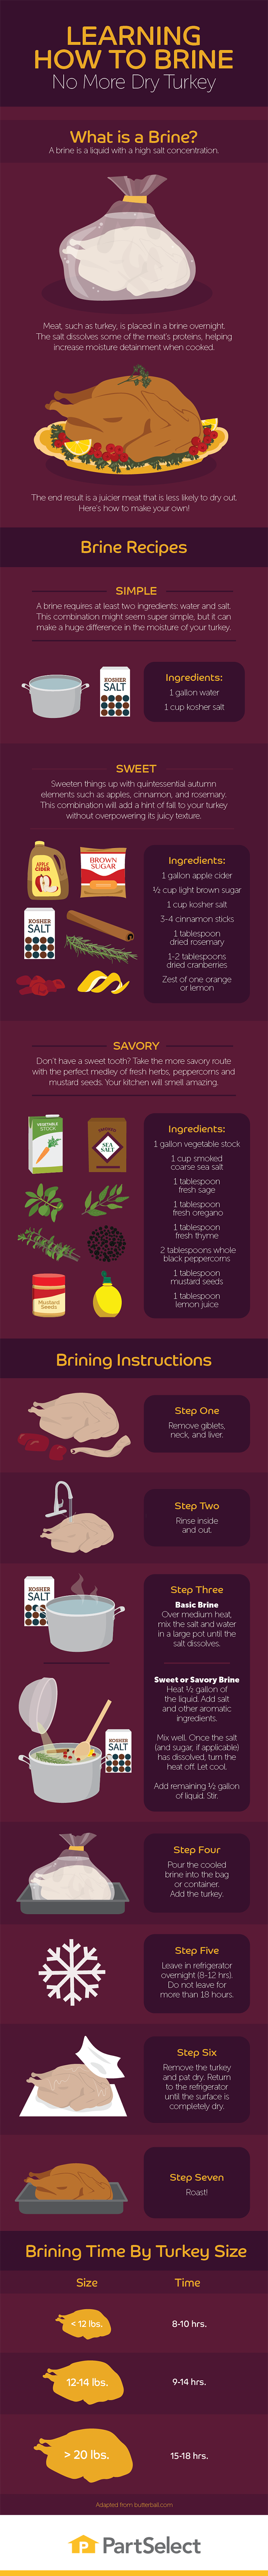 How To Brine Your Turkey Well - Infographic